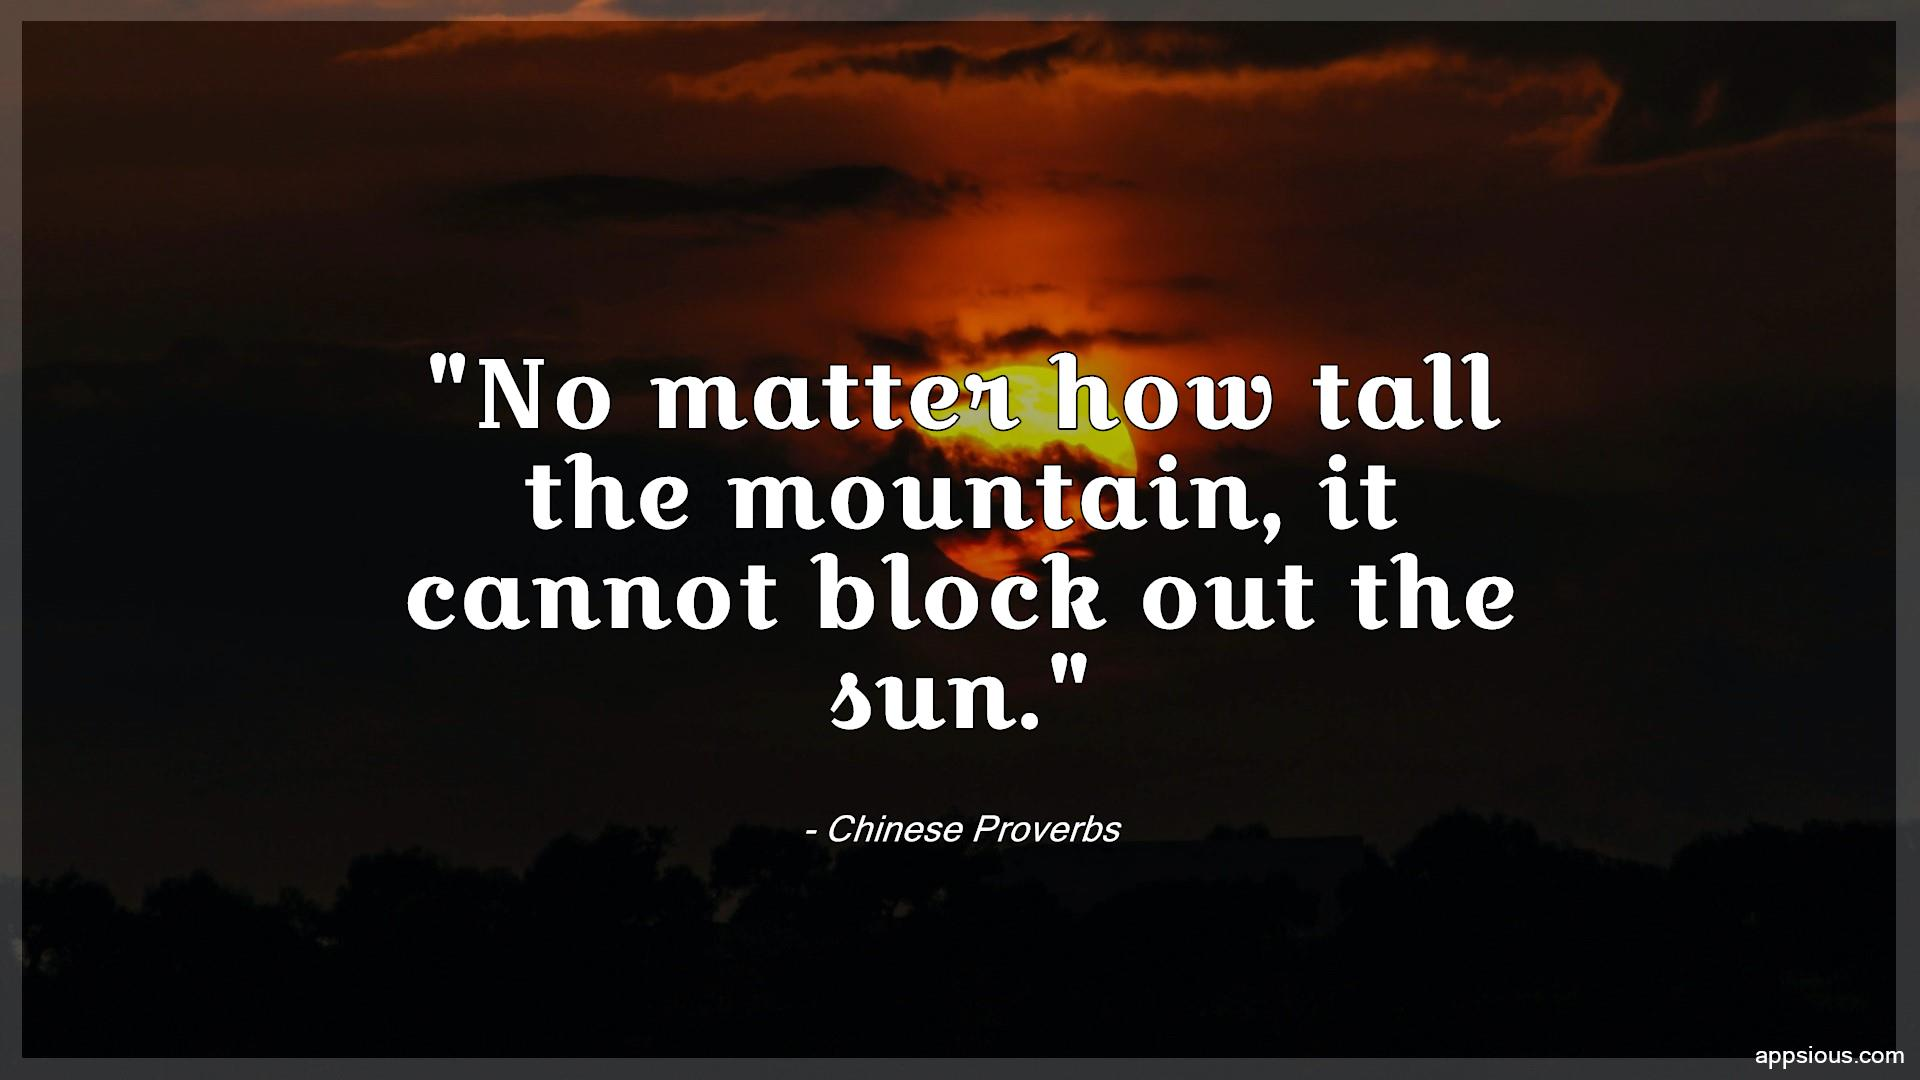 No matter how tall the mountain, it cannot block out the sun.